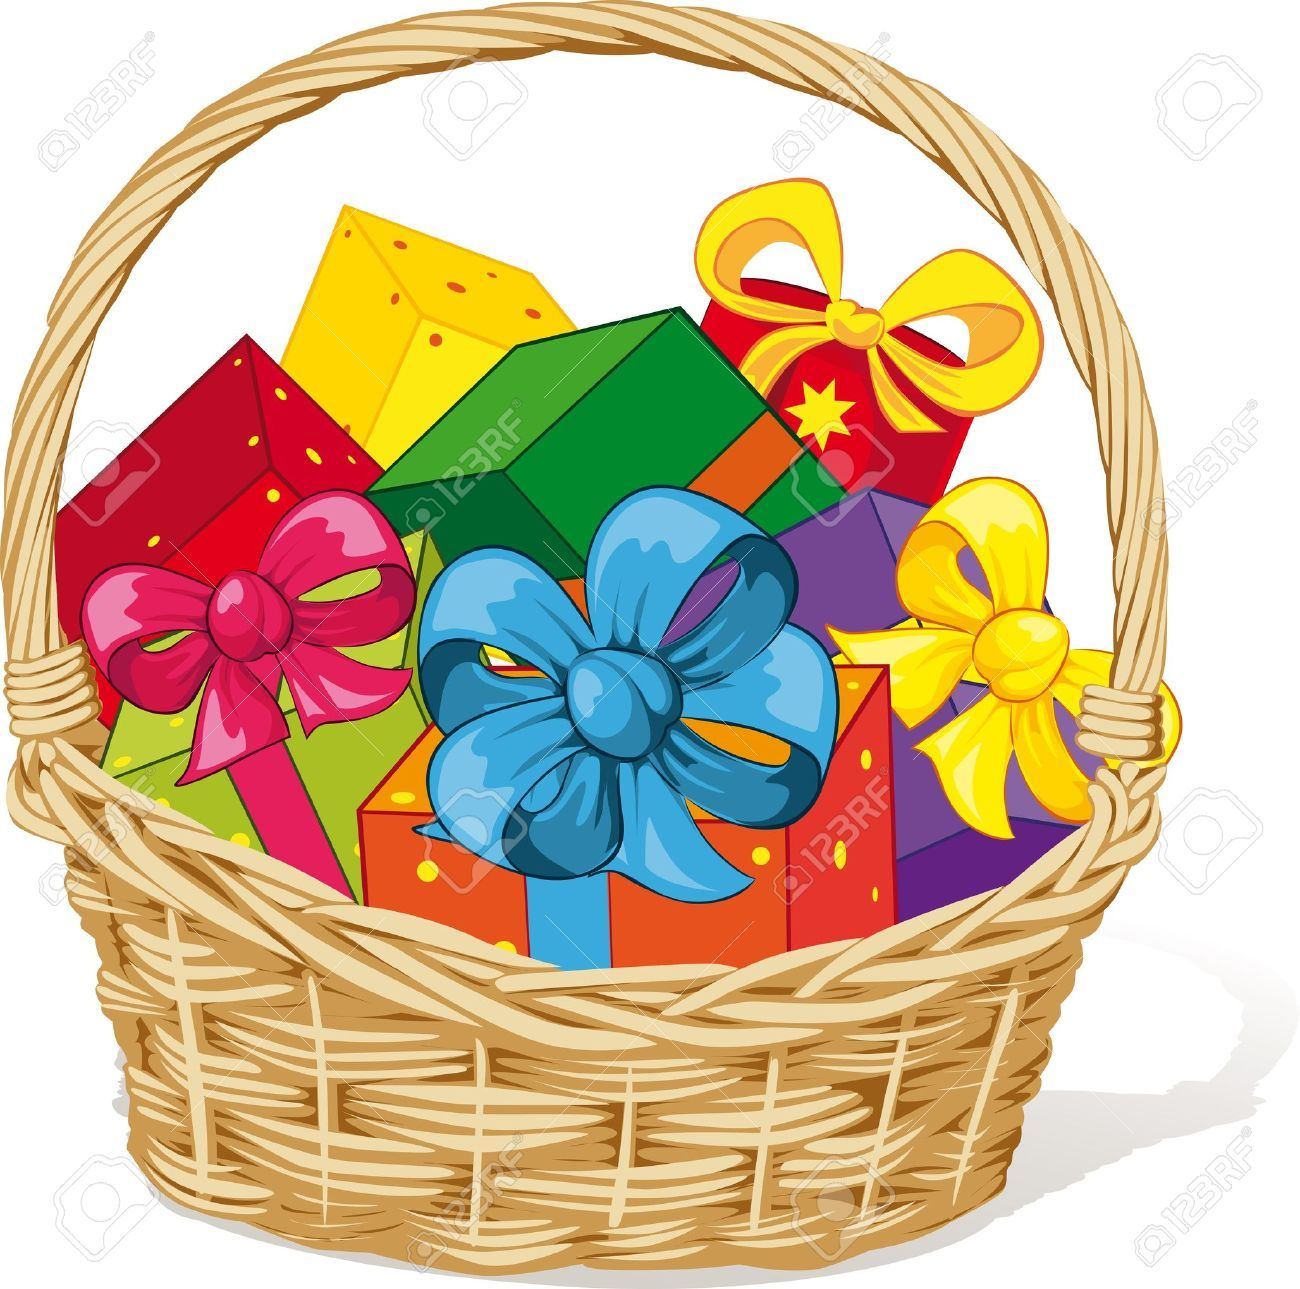 Gift Basket Clipart Clipart Collection Gift Basket, Laundry Basket.